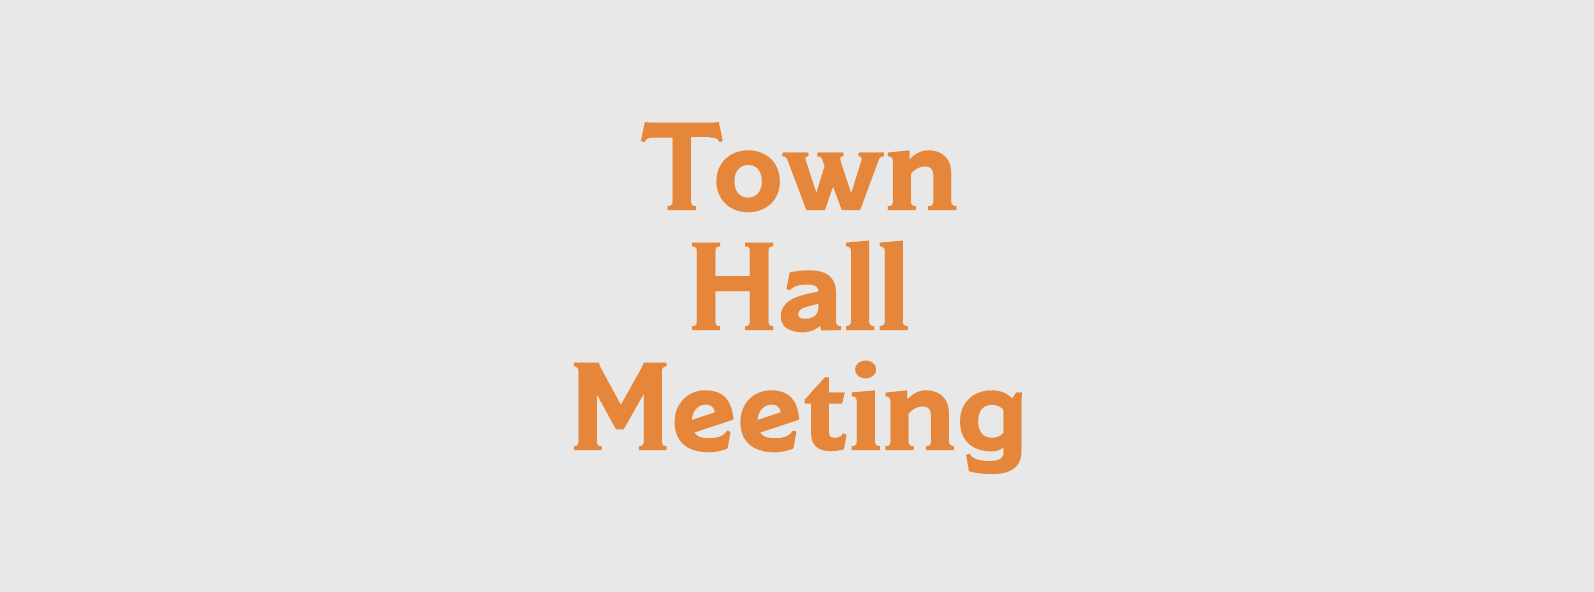 ATEC Town Hall Meeting Event Banner